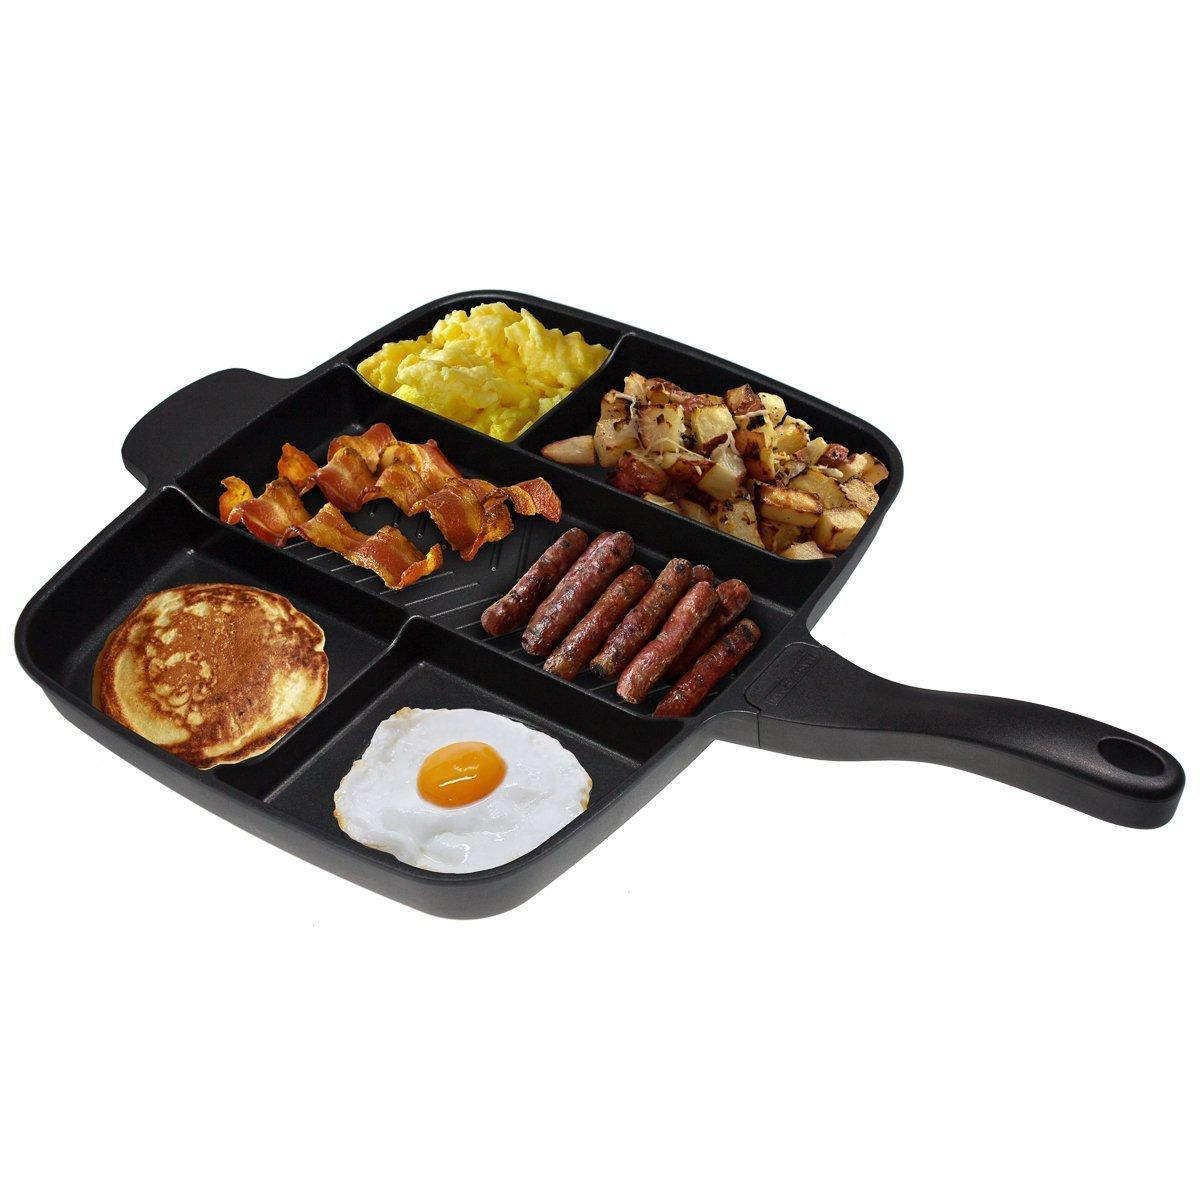 5 in 1 Non Stick Frying Pan 5